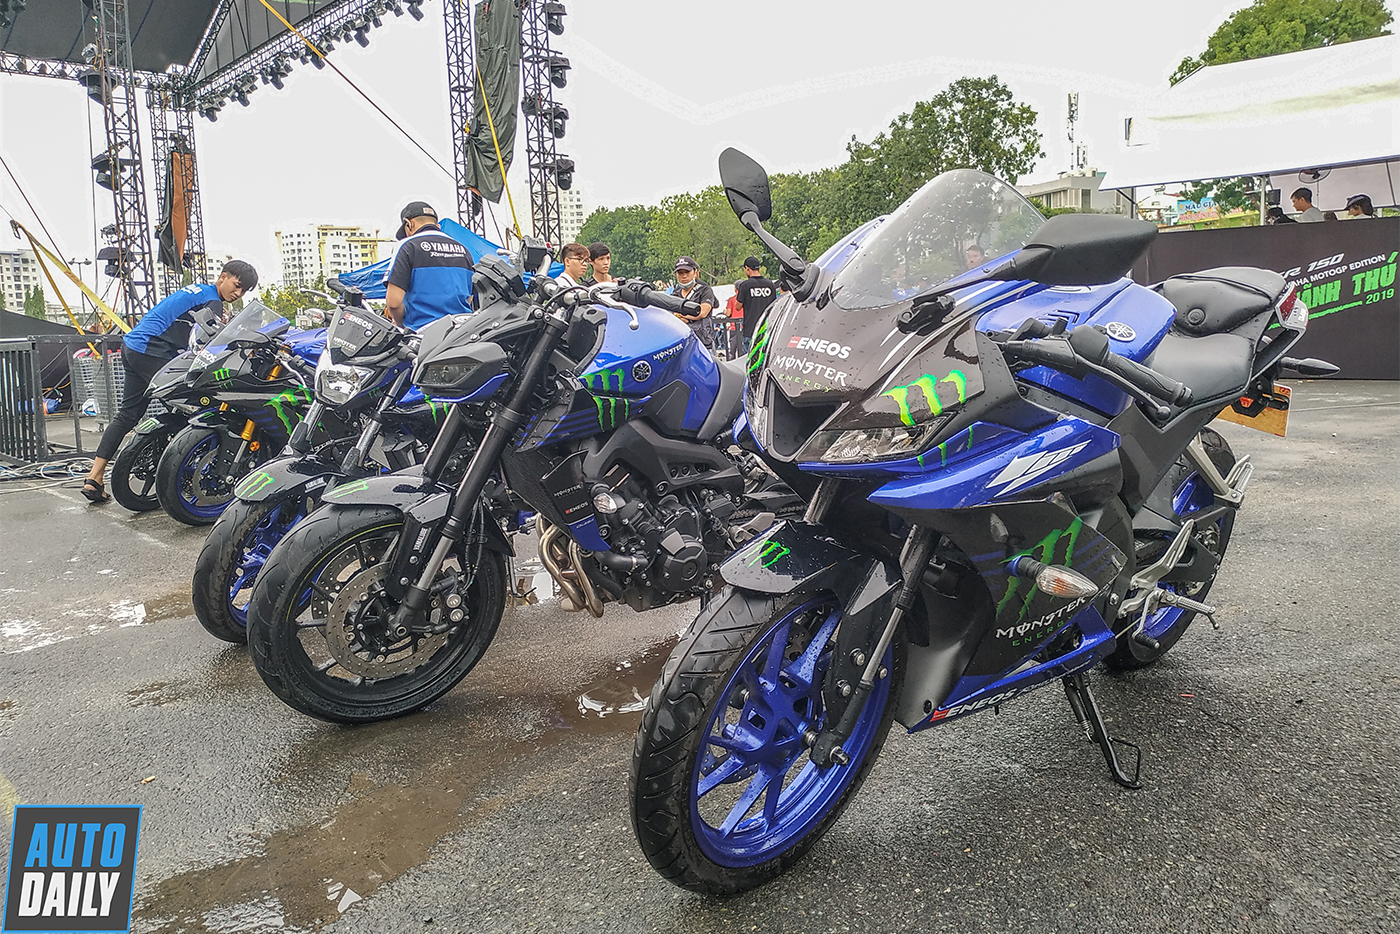 yamaha-monster-energy-20.jpg